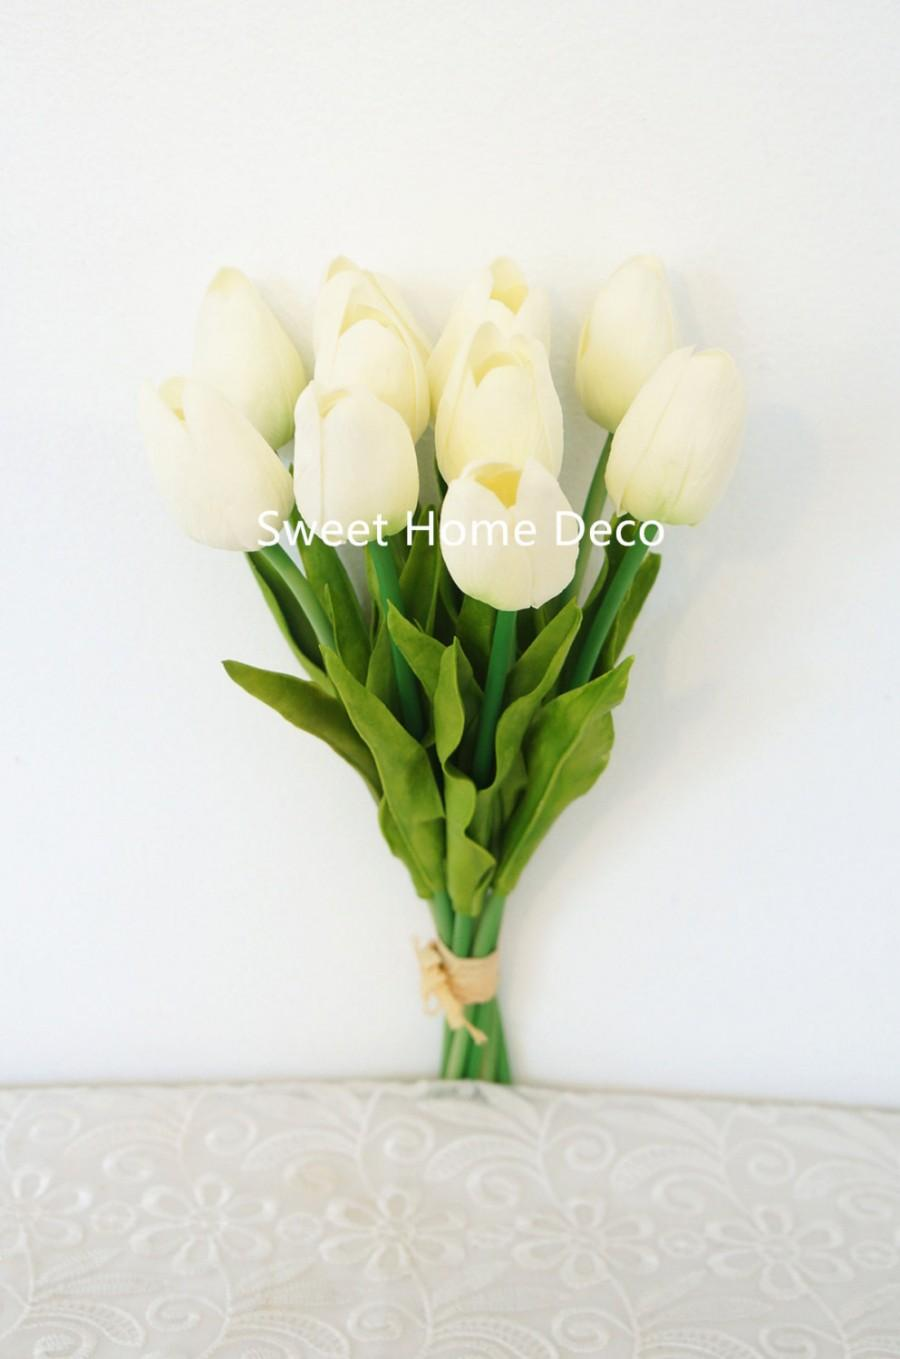 Mariage - JennysFlowerShop Latex Real Touch 13'' Artificial Tulip 10 Stems Flower Bouquet for Home/Wedding White Re-stock on 05/15/17